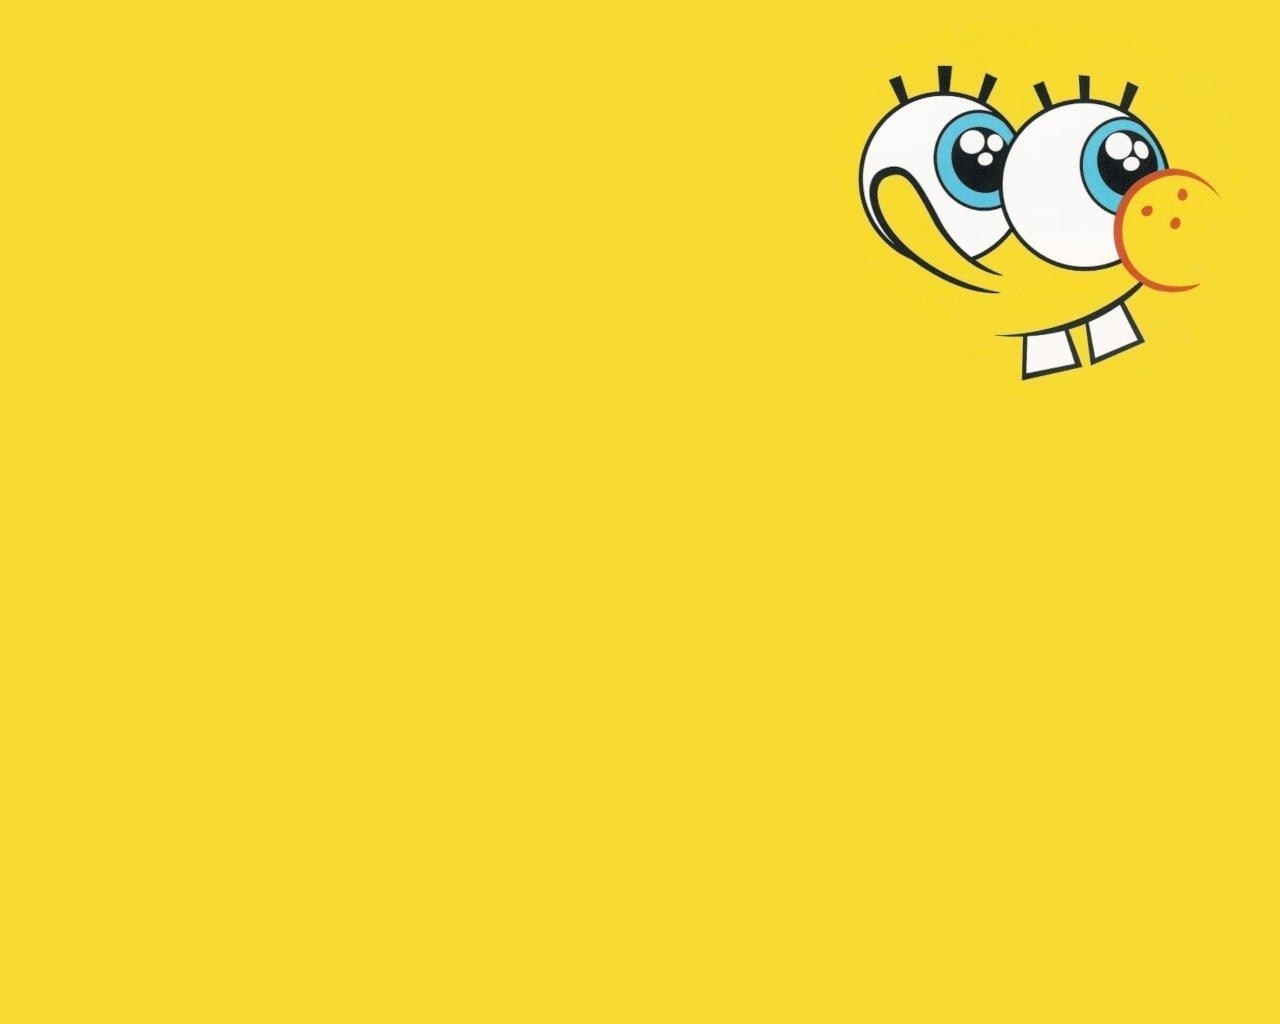 Spongebob Wallpaper - impremedia.net